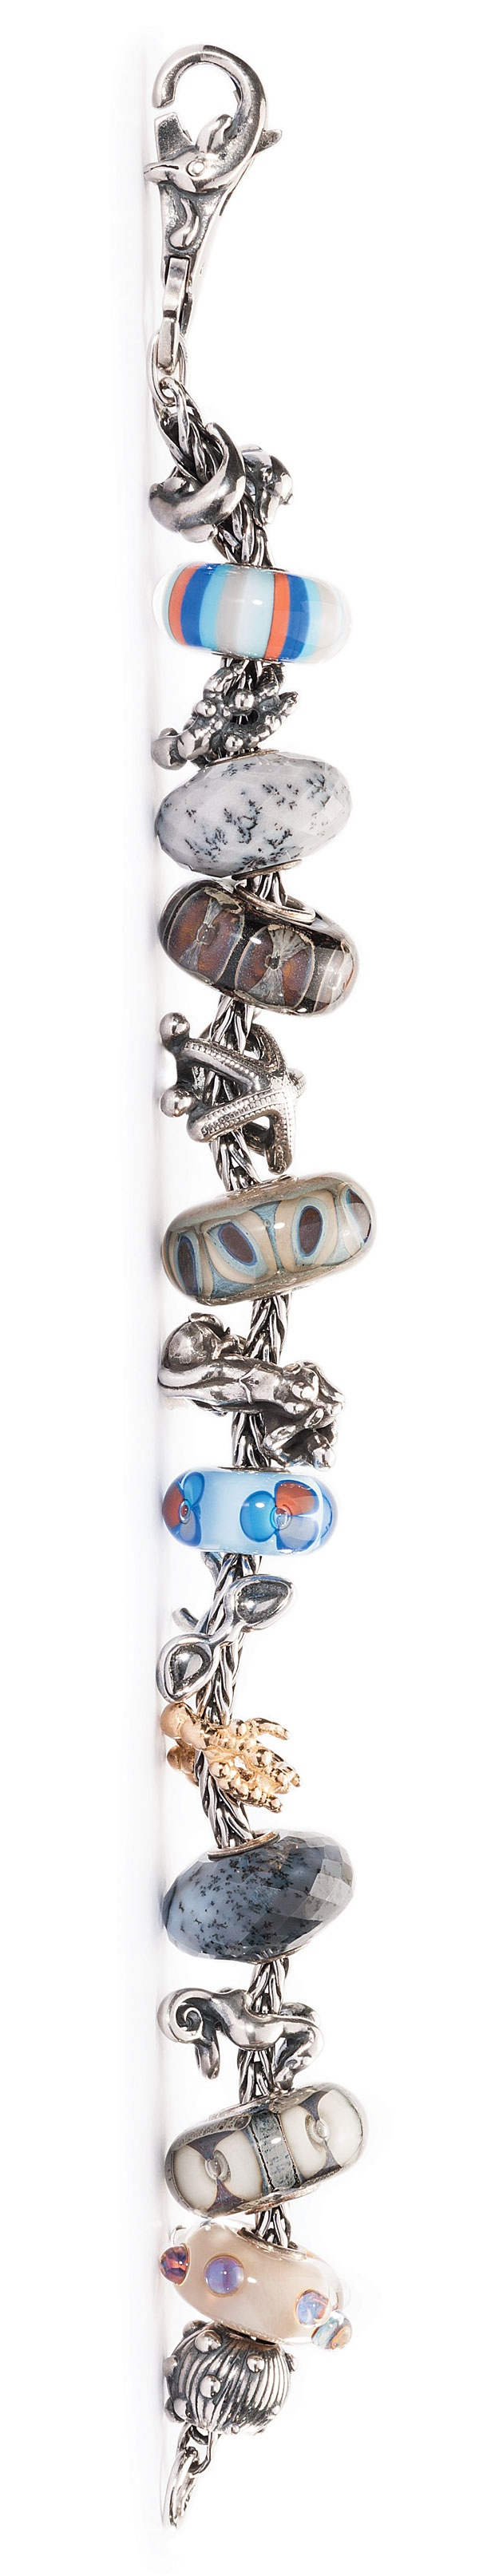 Love the newest Trollbeads for Spring and Summer!http://www.trollbeadsgallery.com/new-spring-2013-trollbeads-release/